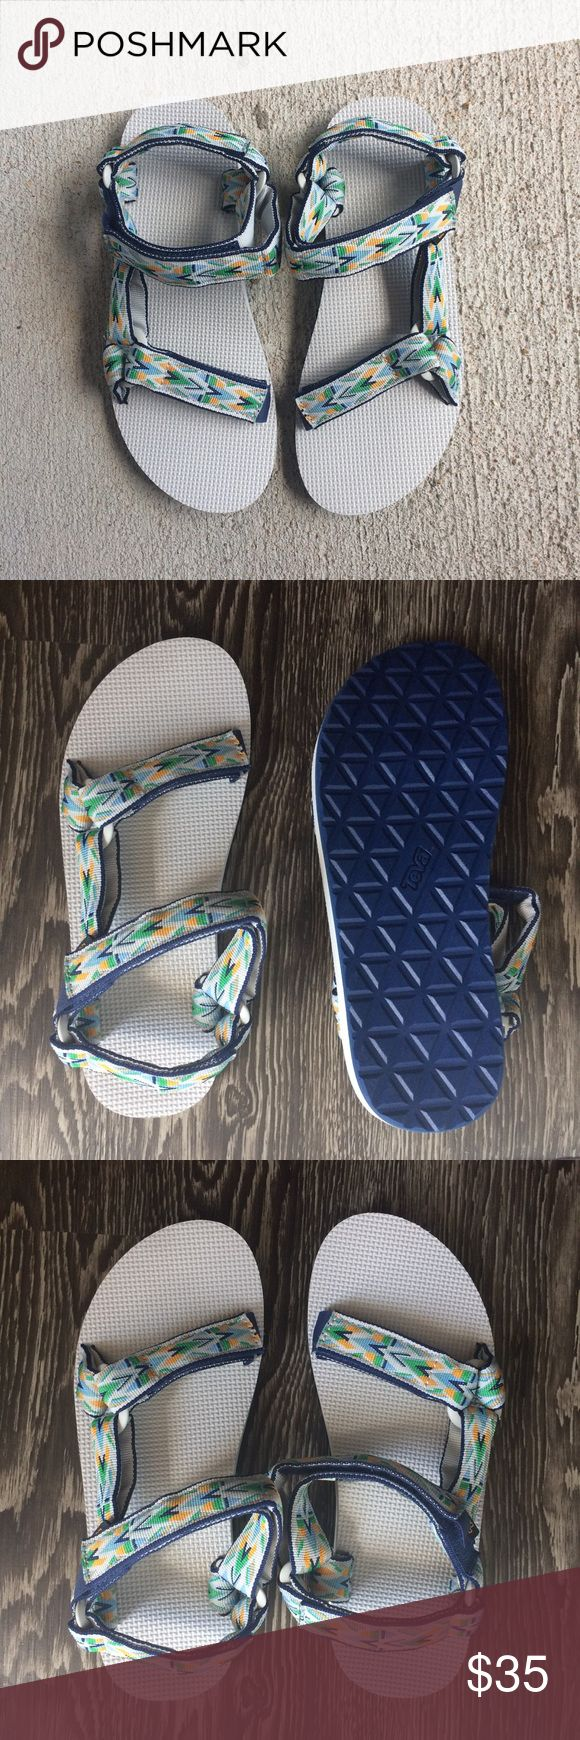 Men's Teva Universal original Inca edition Stay fly in comfort with these Teva Universal Inca edition sandals! Great for on or off the trail! Double straps for optimal comfort- Very stylish and VERY comfortable! BRAND NEW WITHOUT TAGS/BOX Teva Shoes Sandals & Flip-Flops